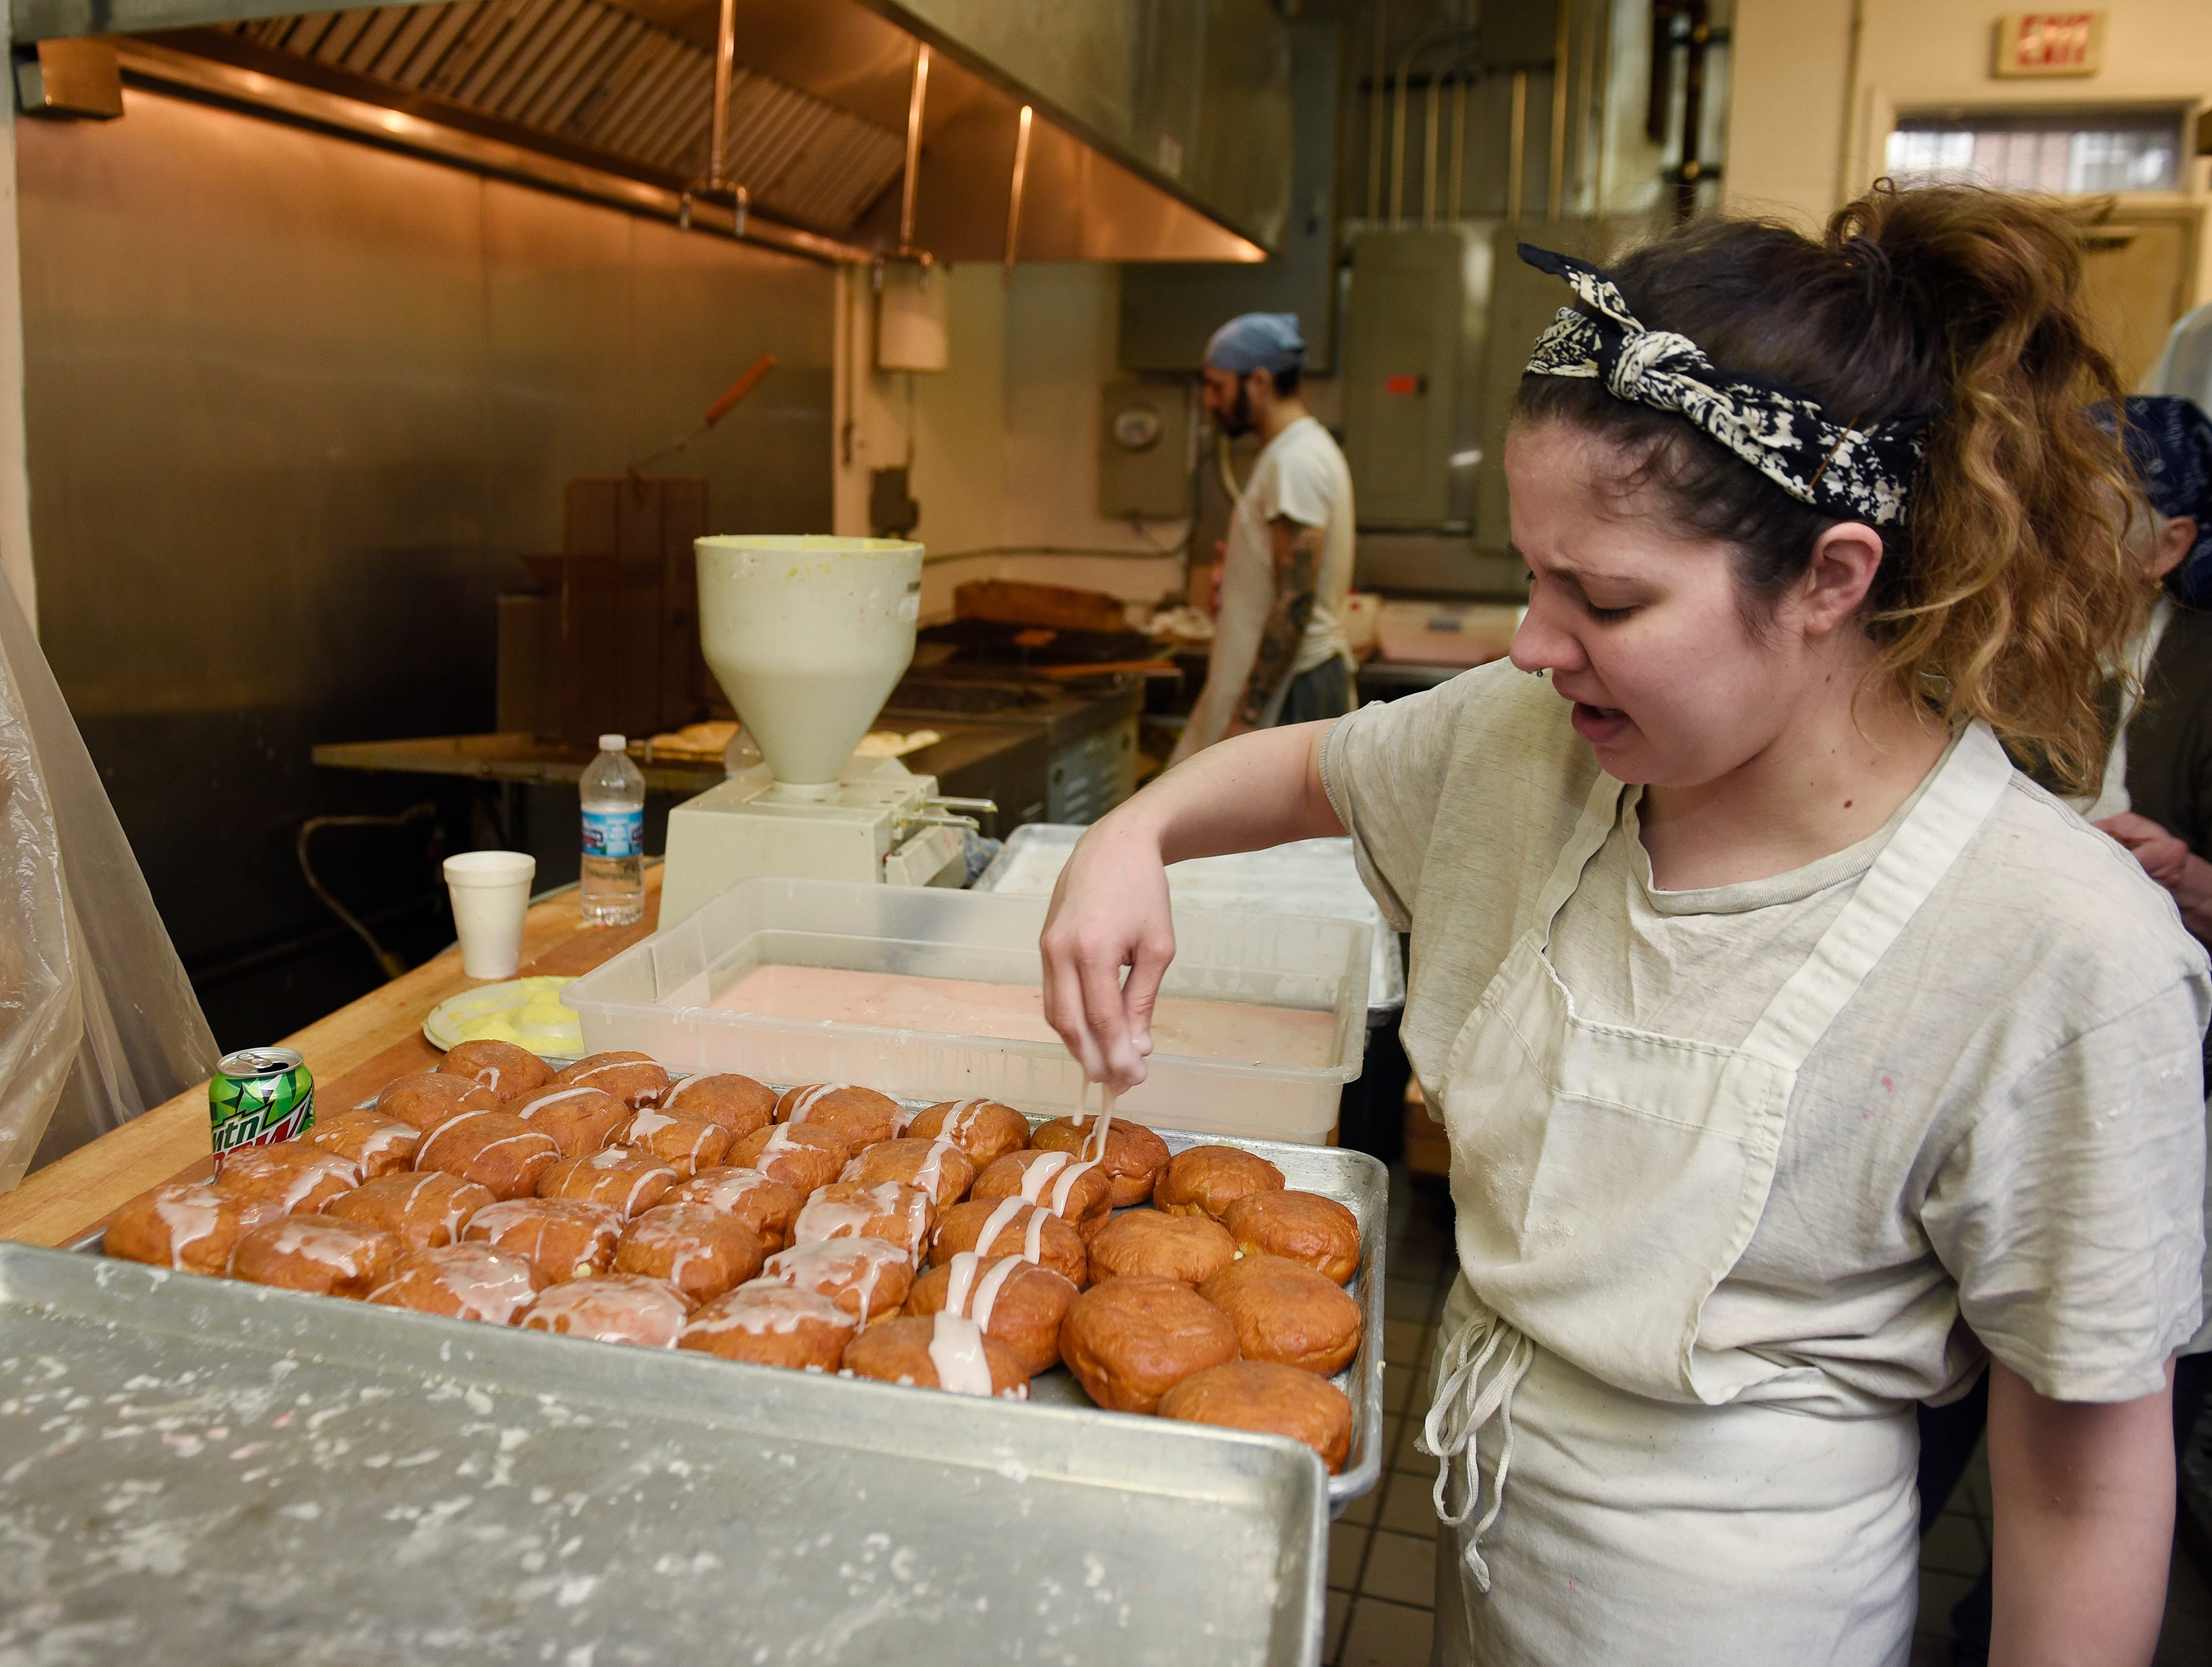 Petrisha Bakic, 28, applies glaze to a batch of bavarian cream paczki.